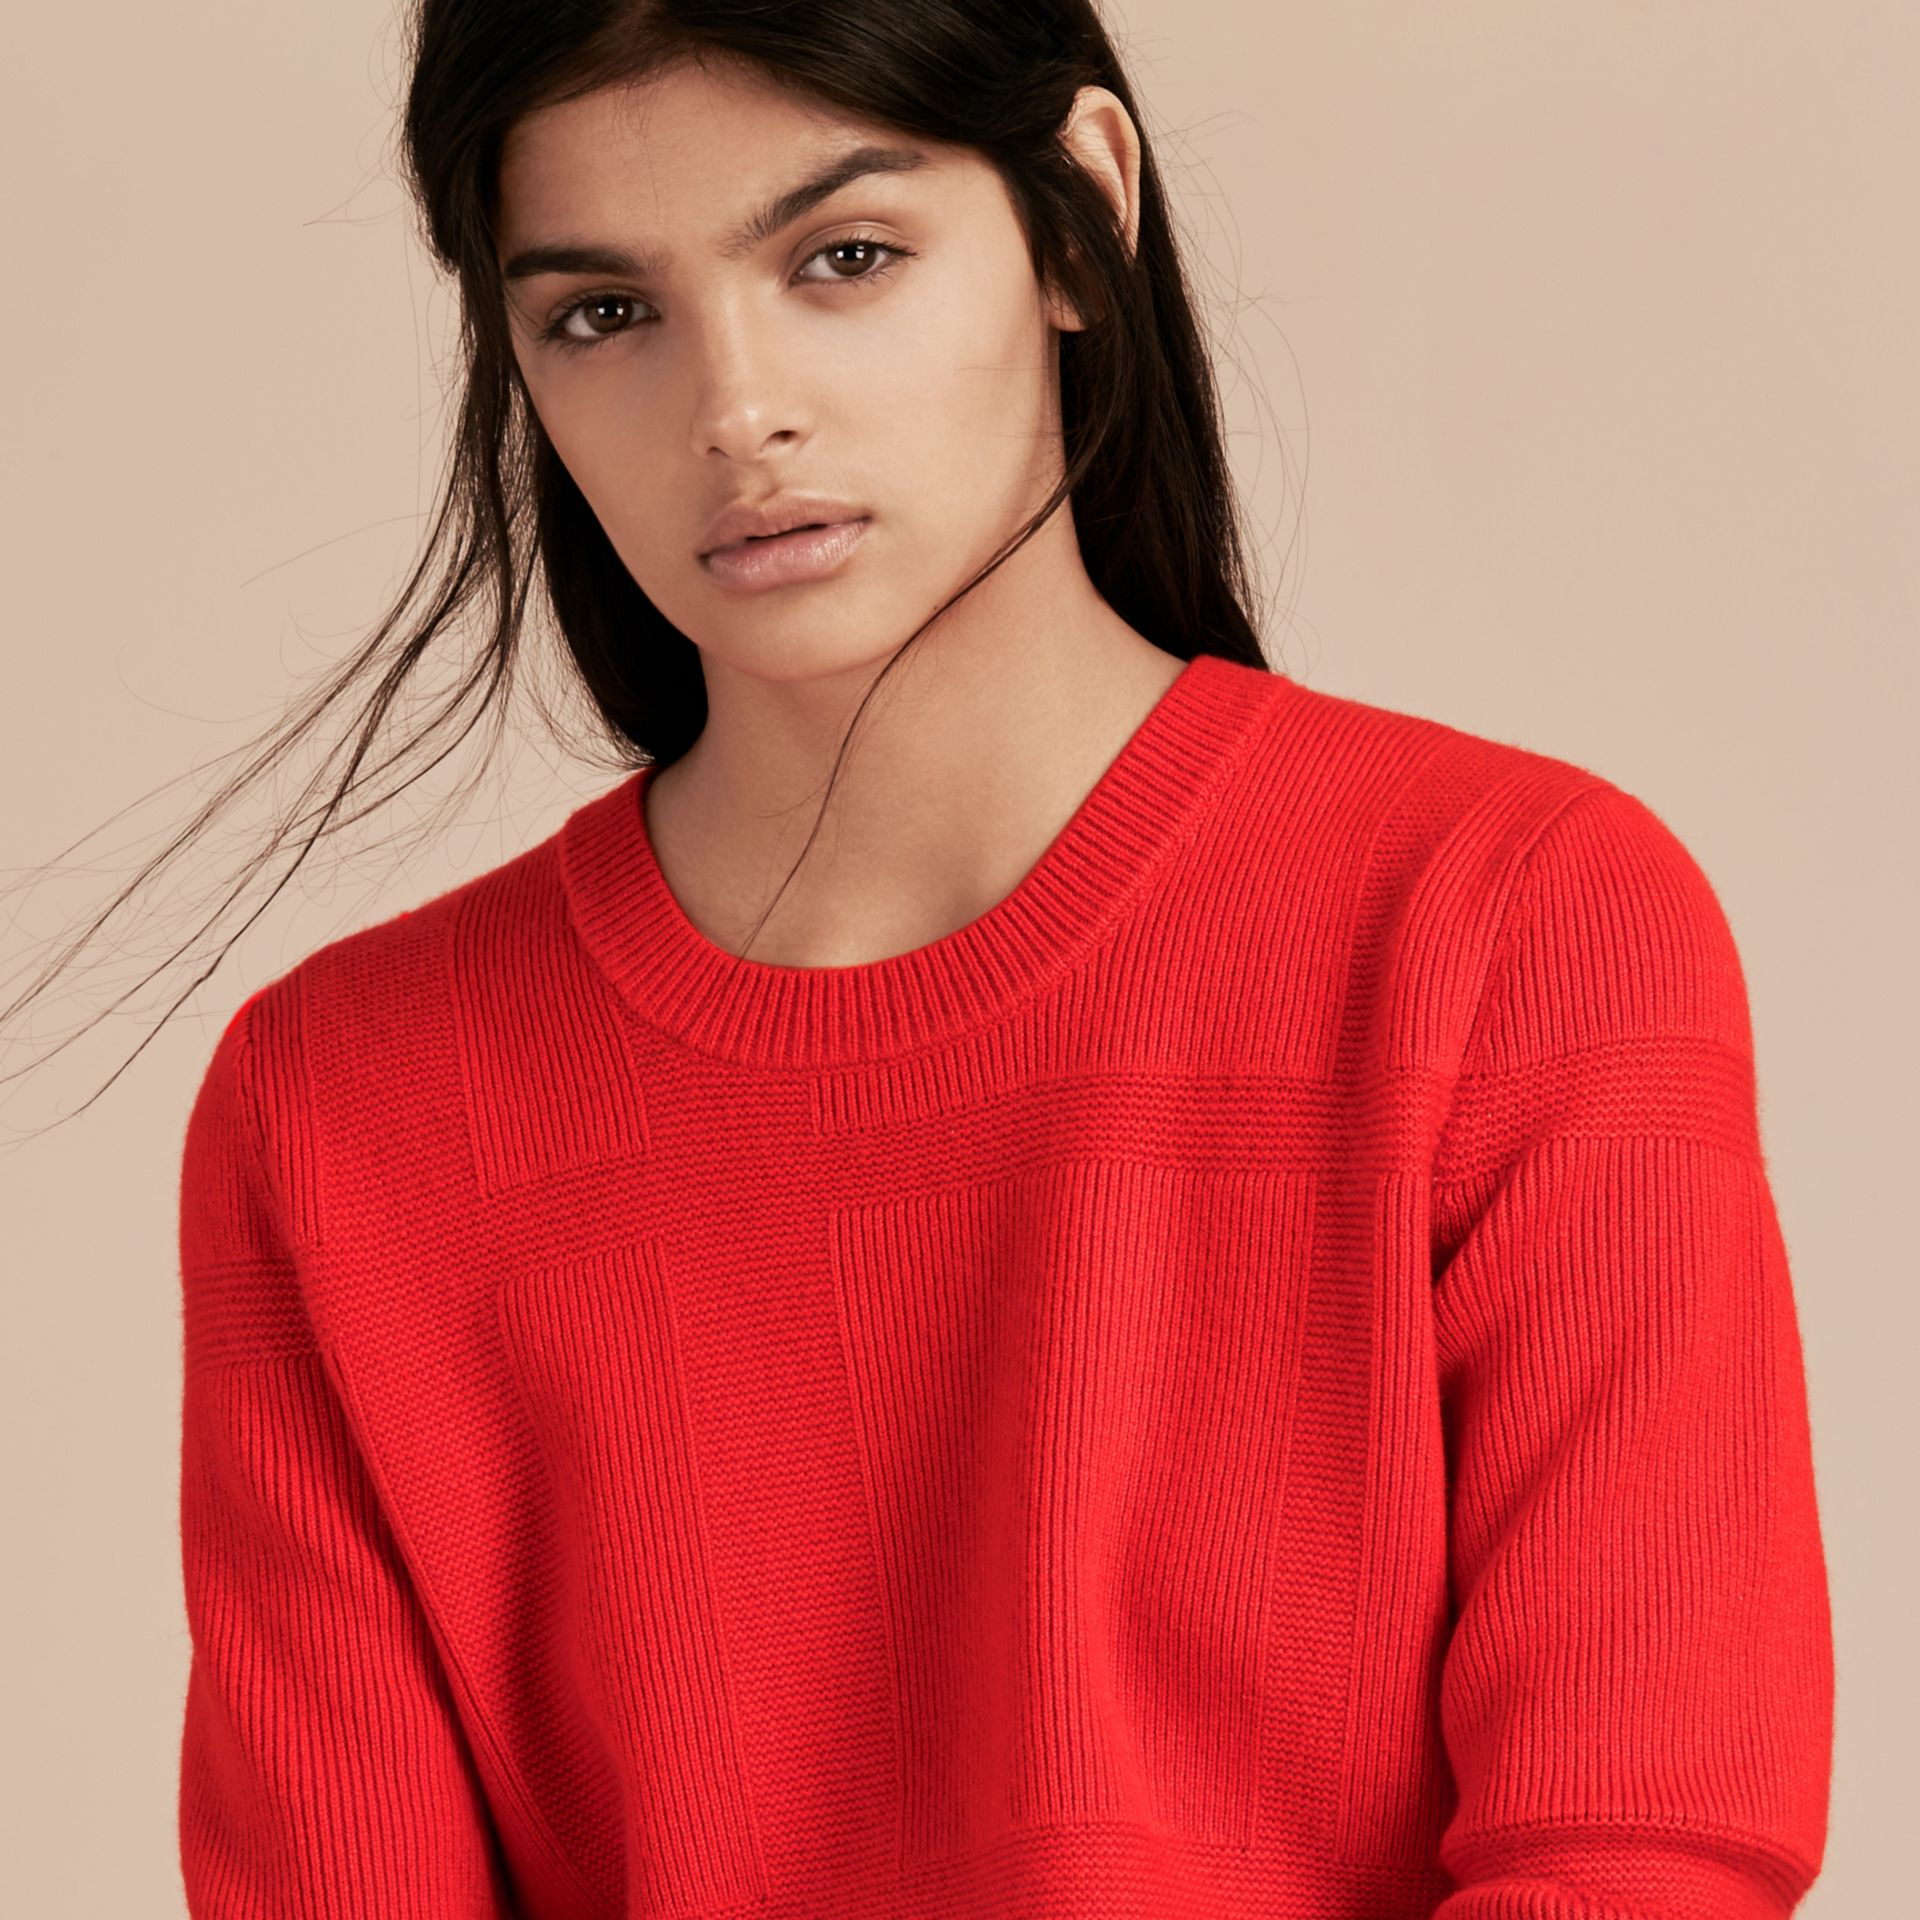 Bright military red Check-knit Wool Cashmere Sweater Bright Military Red - gallery image 6